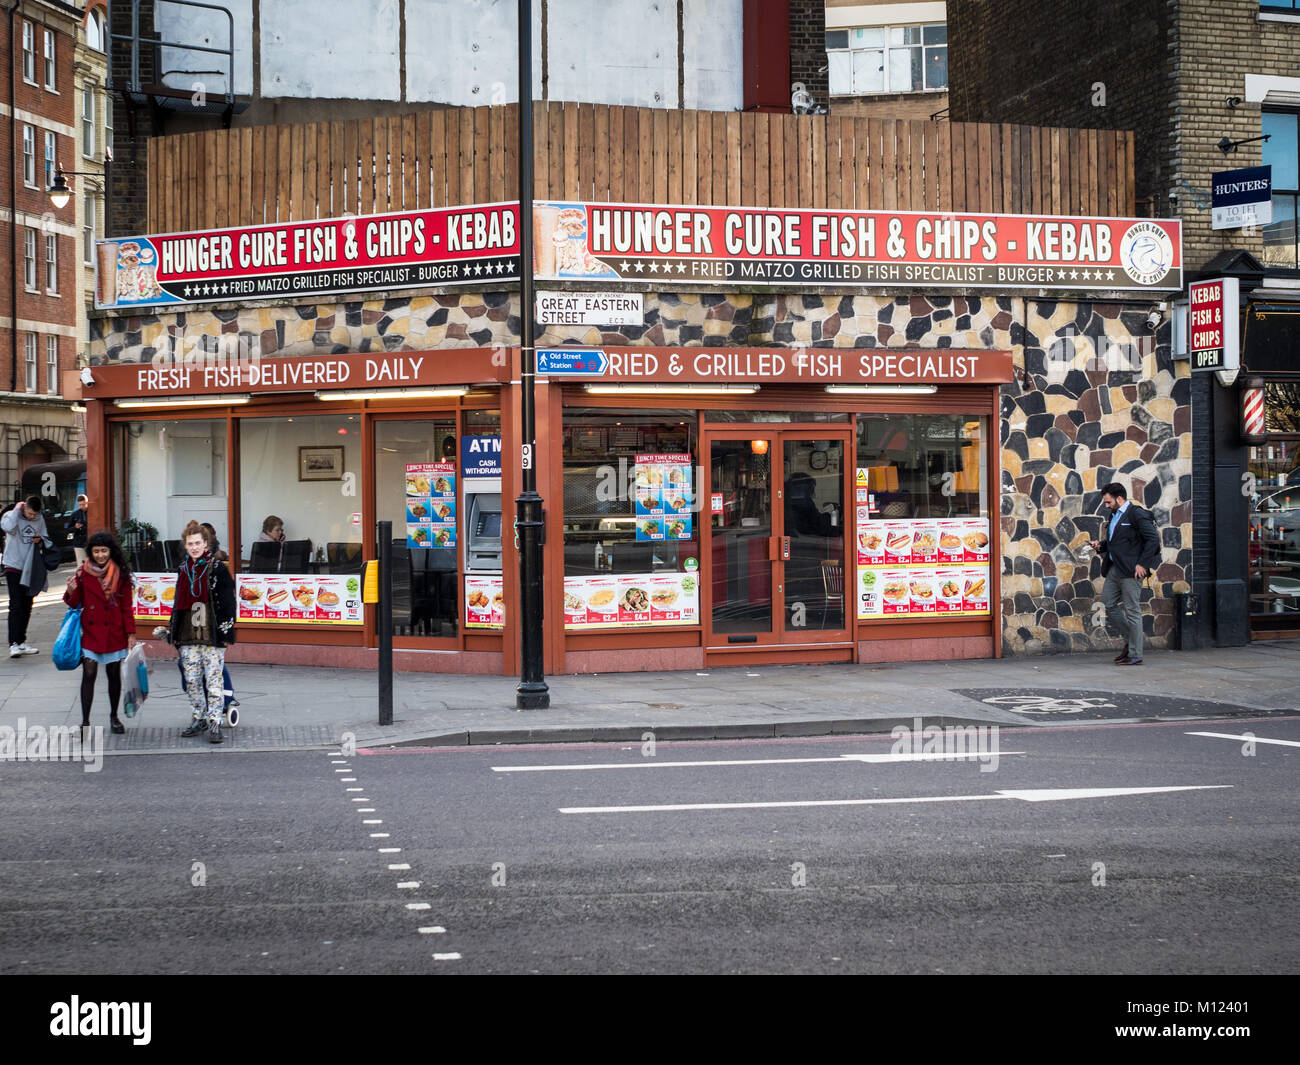 Fish & Chips Kebab shop - the Hunger Cure Fish and Chips Kebab shop near Old Street roundabout in Shoreditch, - Stock Image